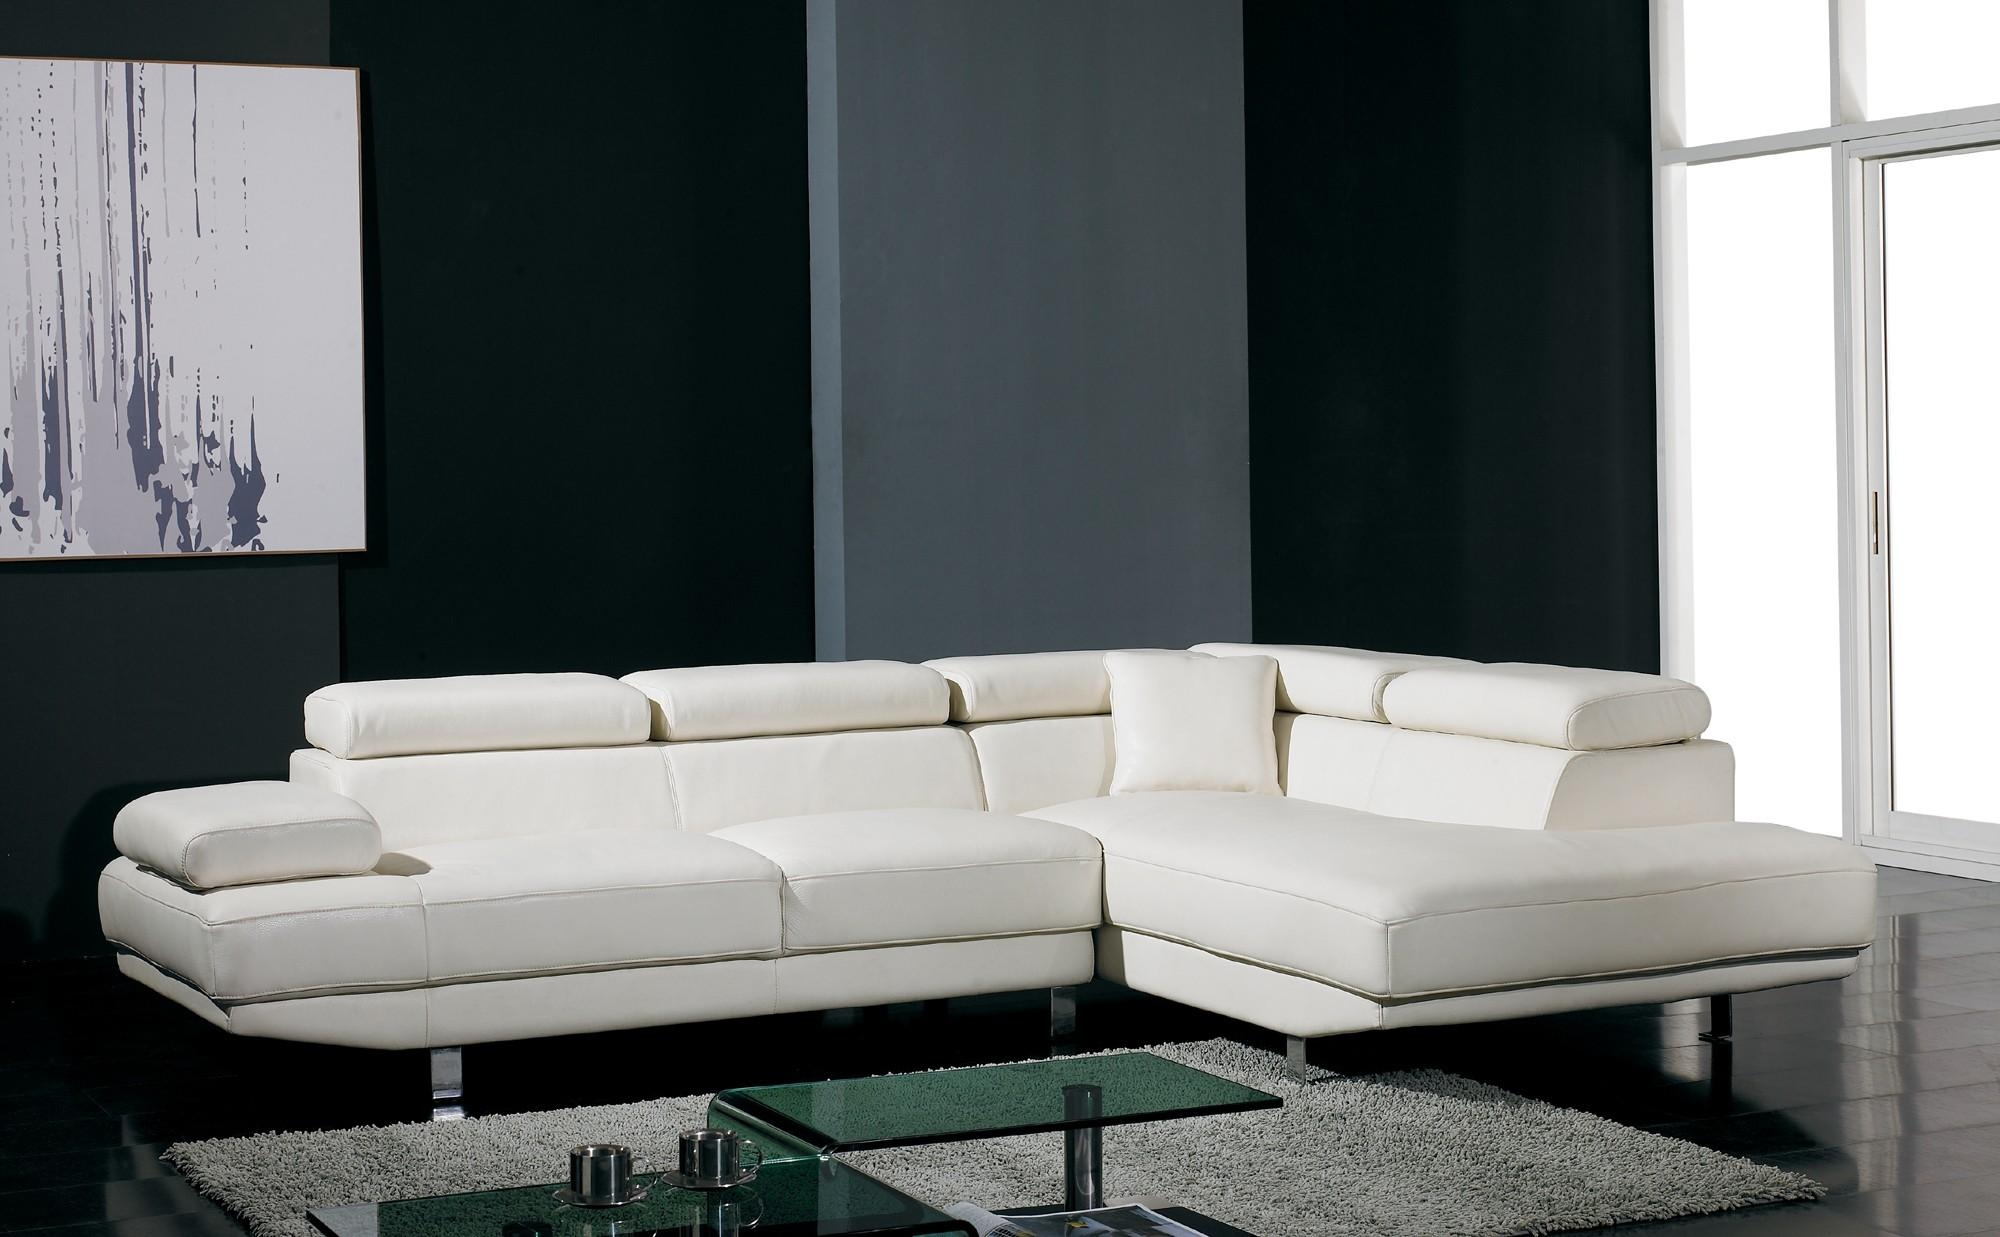 White Sectional Sofa For Sale – Hotelsbacau With Regard To White Sectional Sofa For Sale (View 2 of 21)